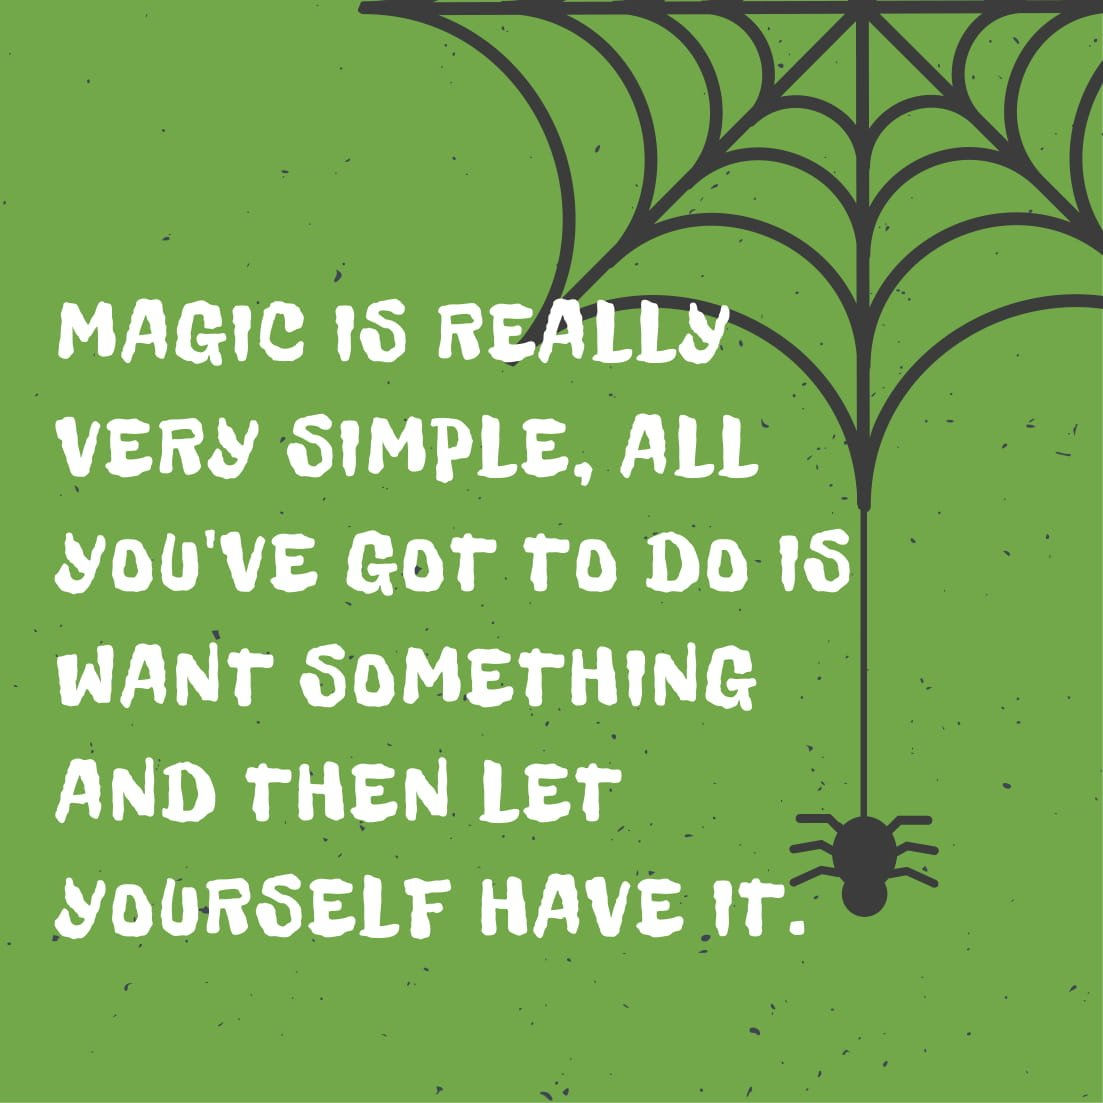 Magic is really very simple, all you've got to do is want something and then let yourself have it.